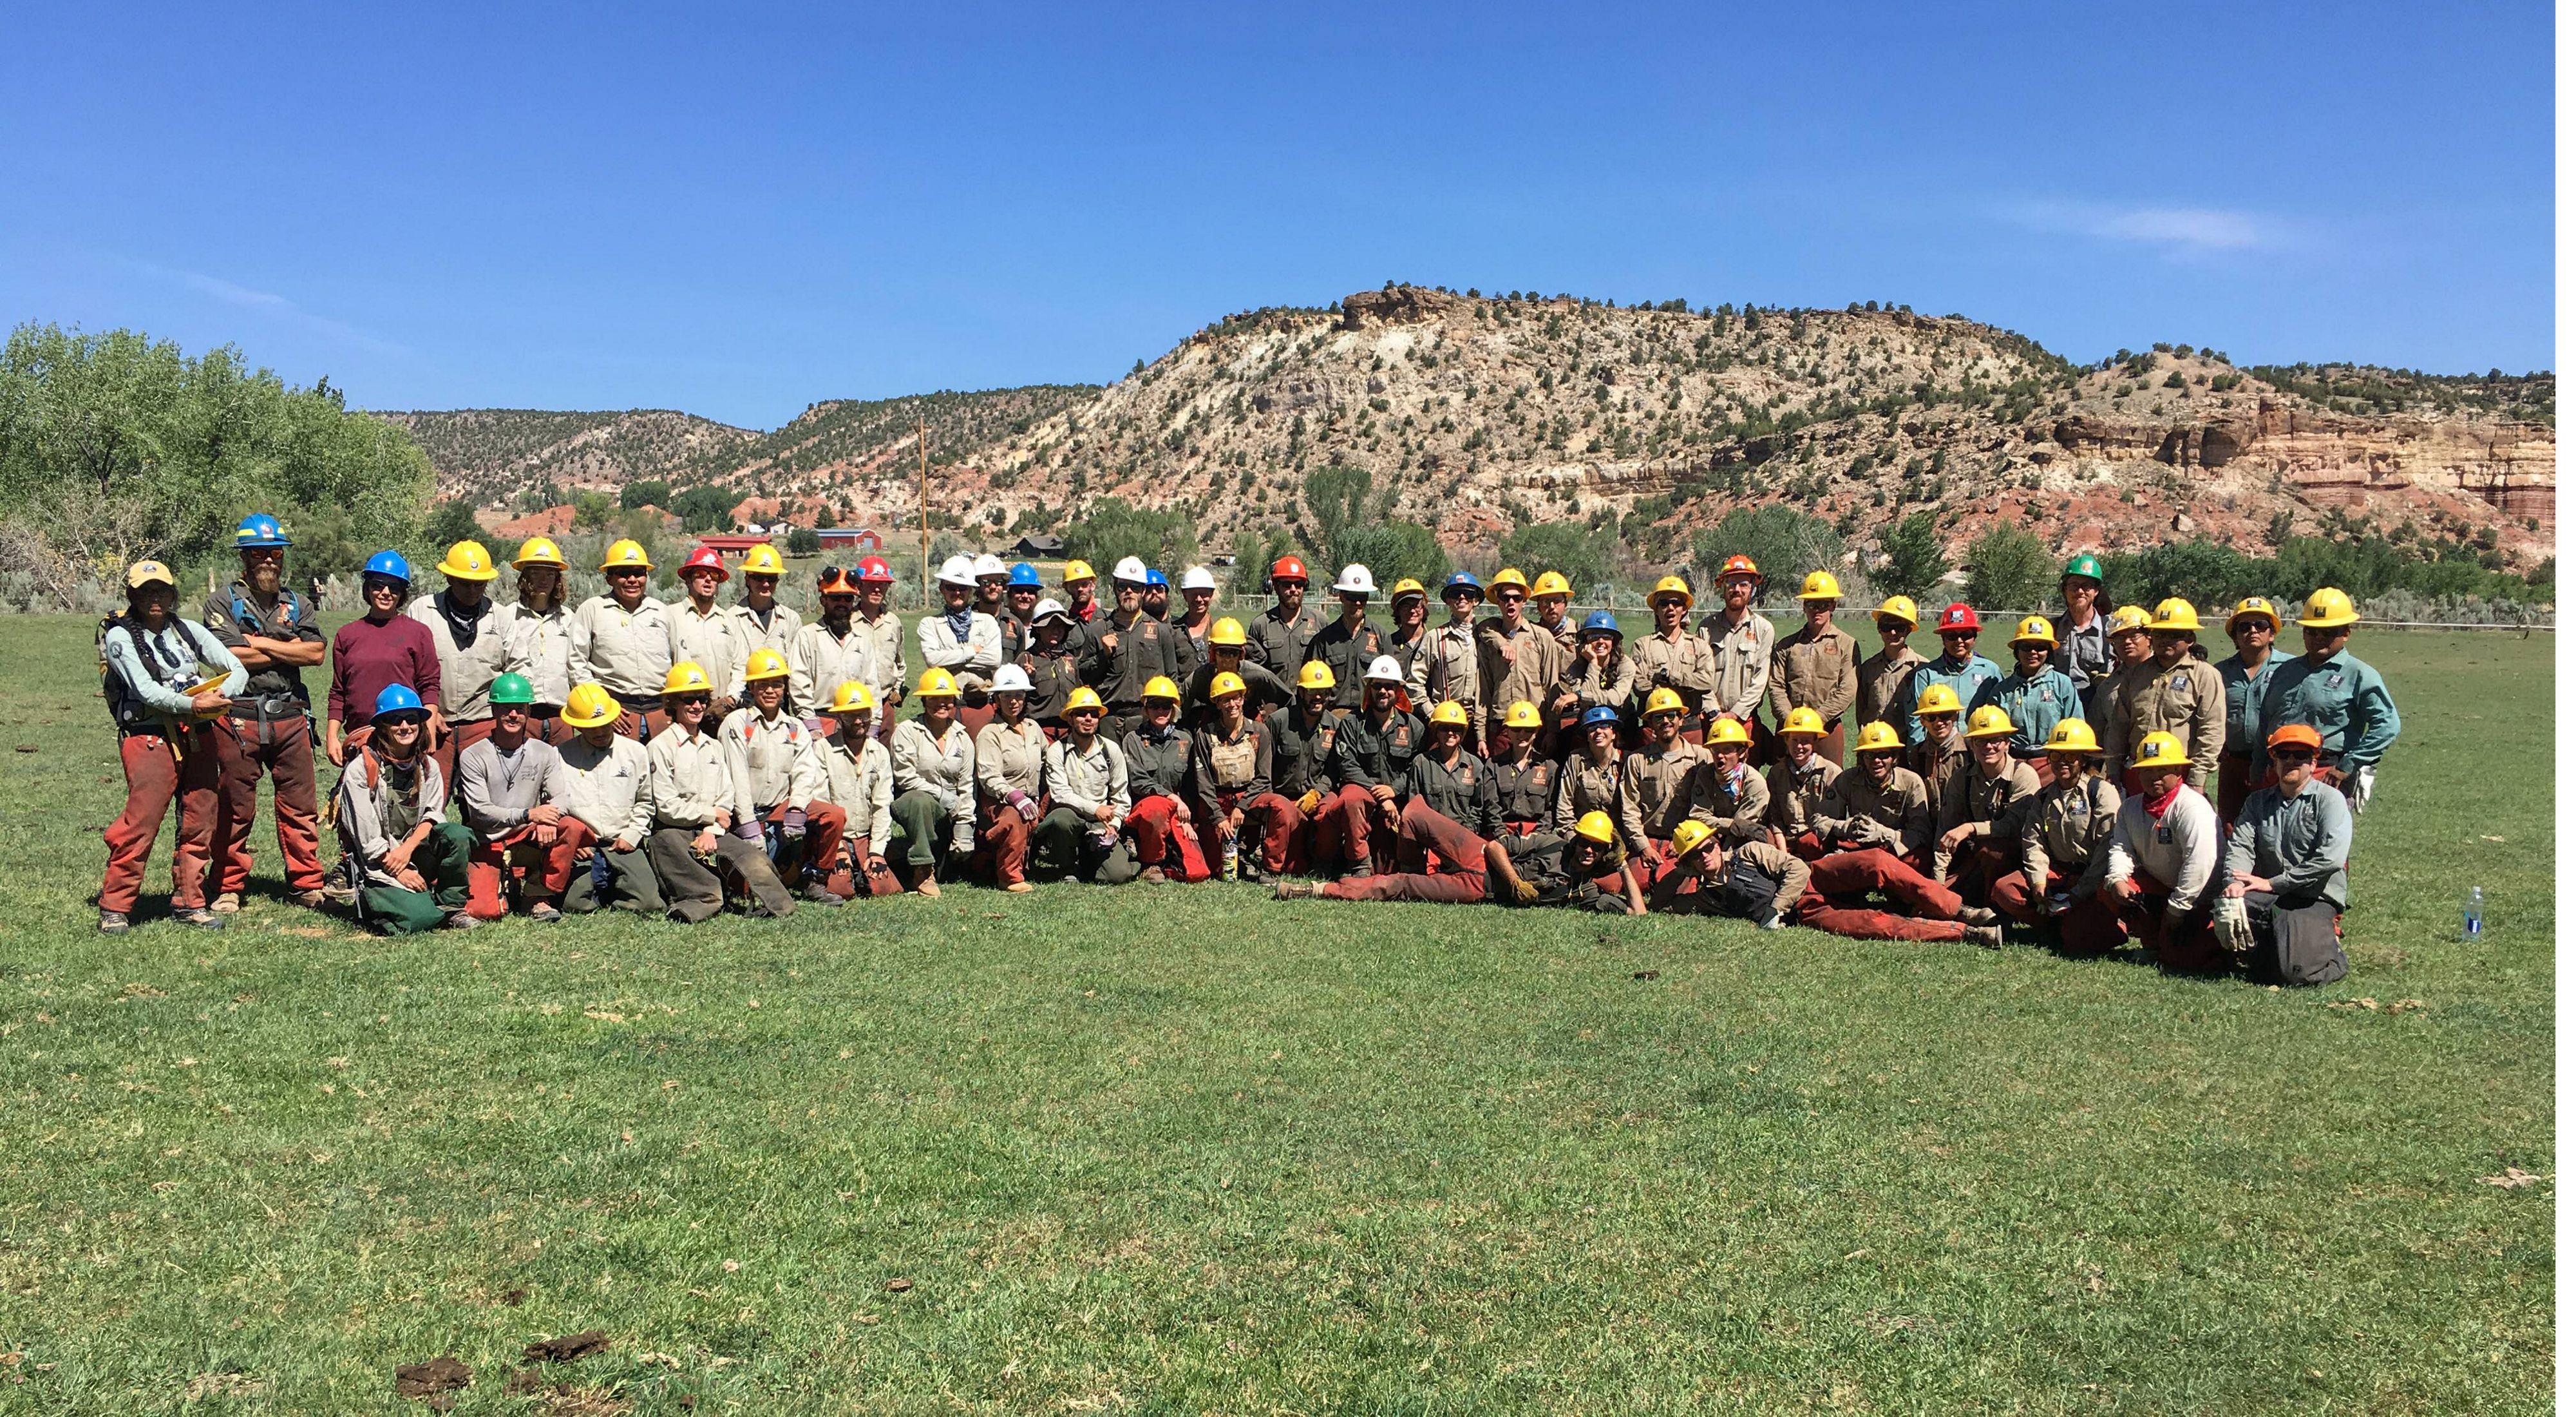 Restoration crews made up of a range of workers and volunteers manned the frontlines in the fight against invasives along the Escalante River.